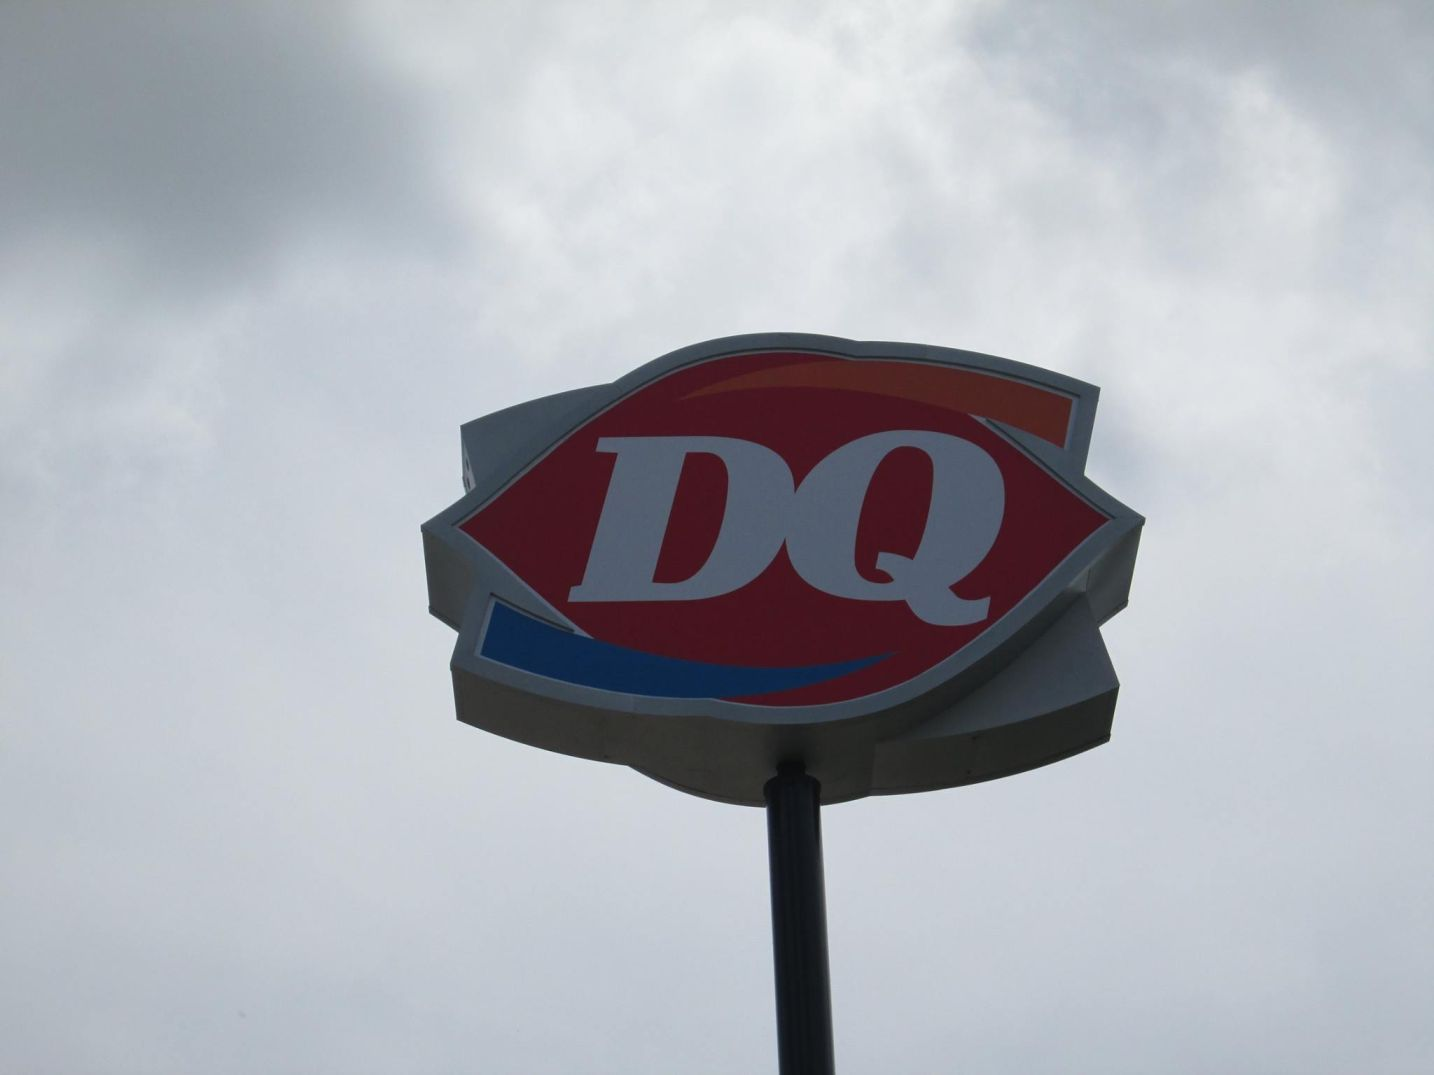 Dairy Queen pylon